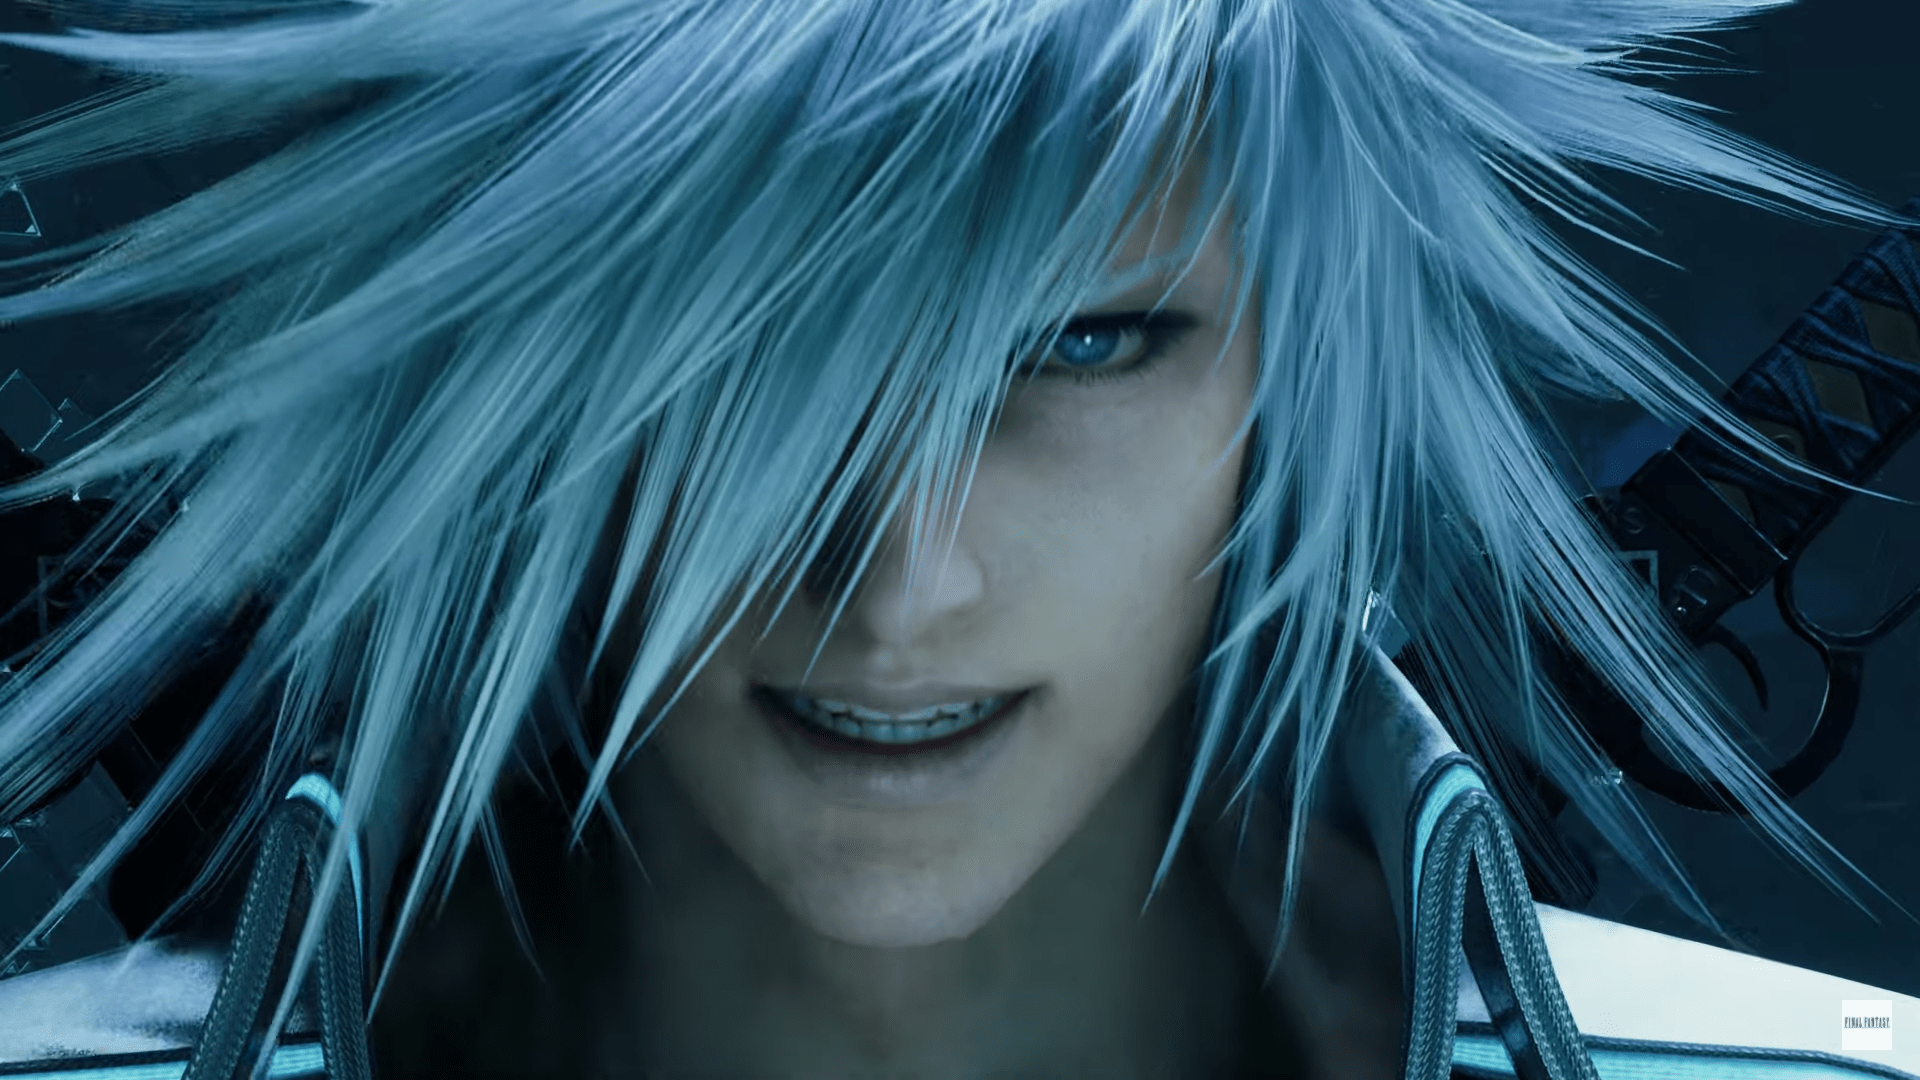 Annunciato Final Fantasy VII Remake Intergrade per PlayStation 5